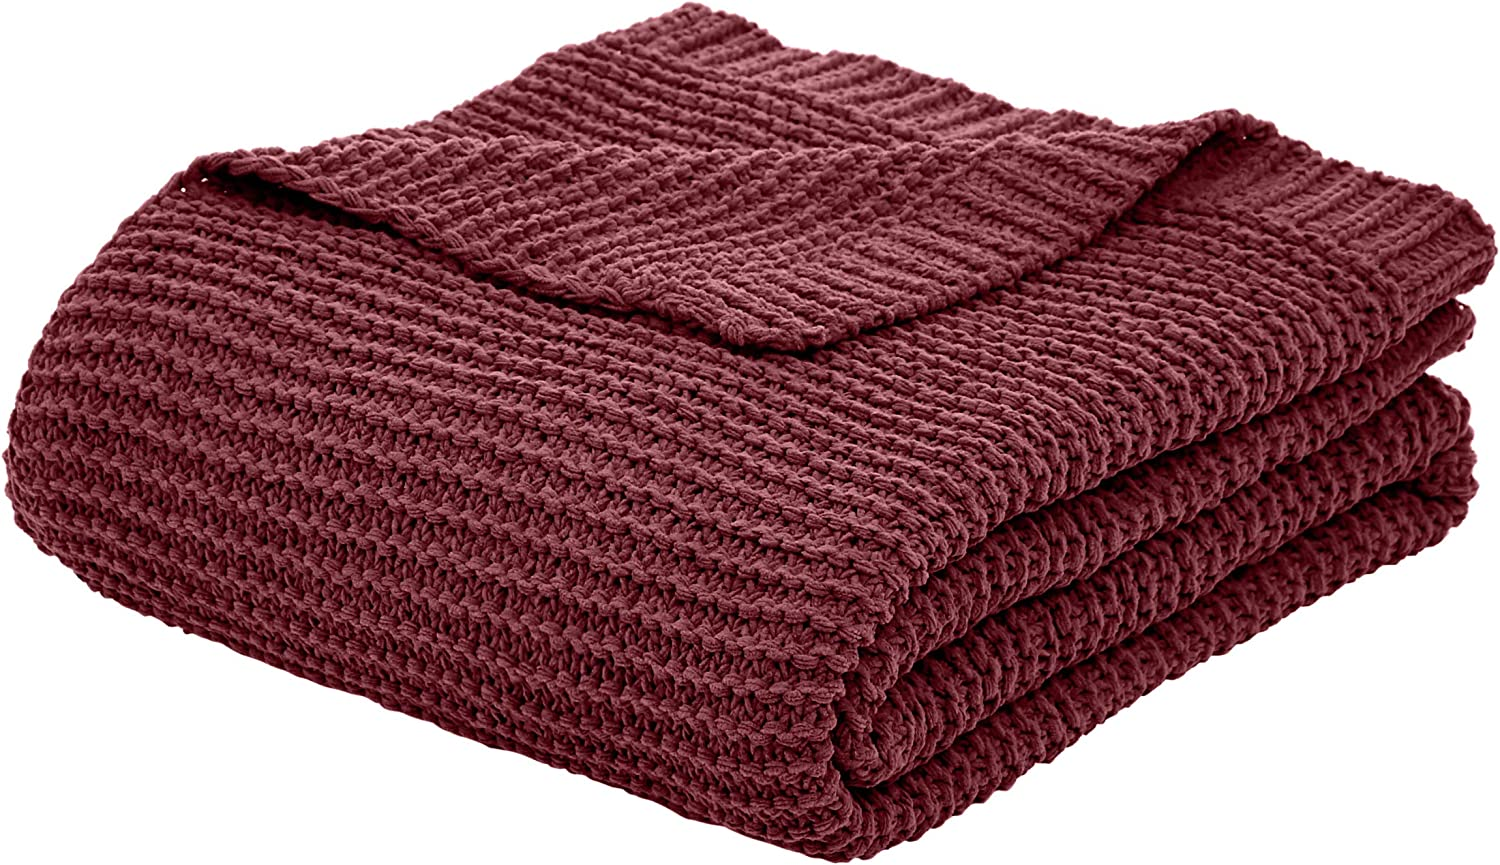 AmazonBasics Knitted Chenille Throw Blanket - 66 x 90 Inches, Bordeaux